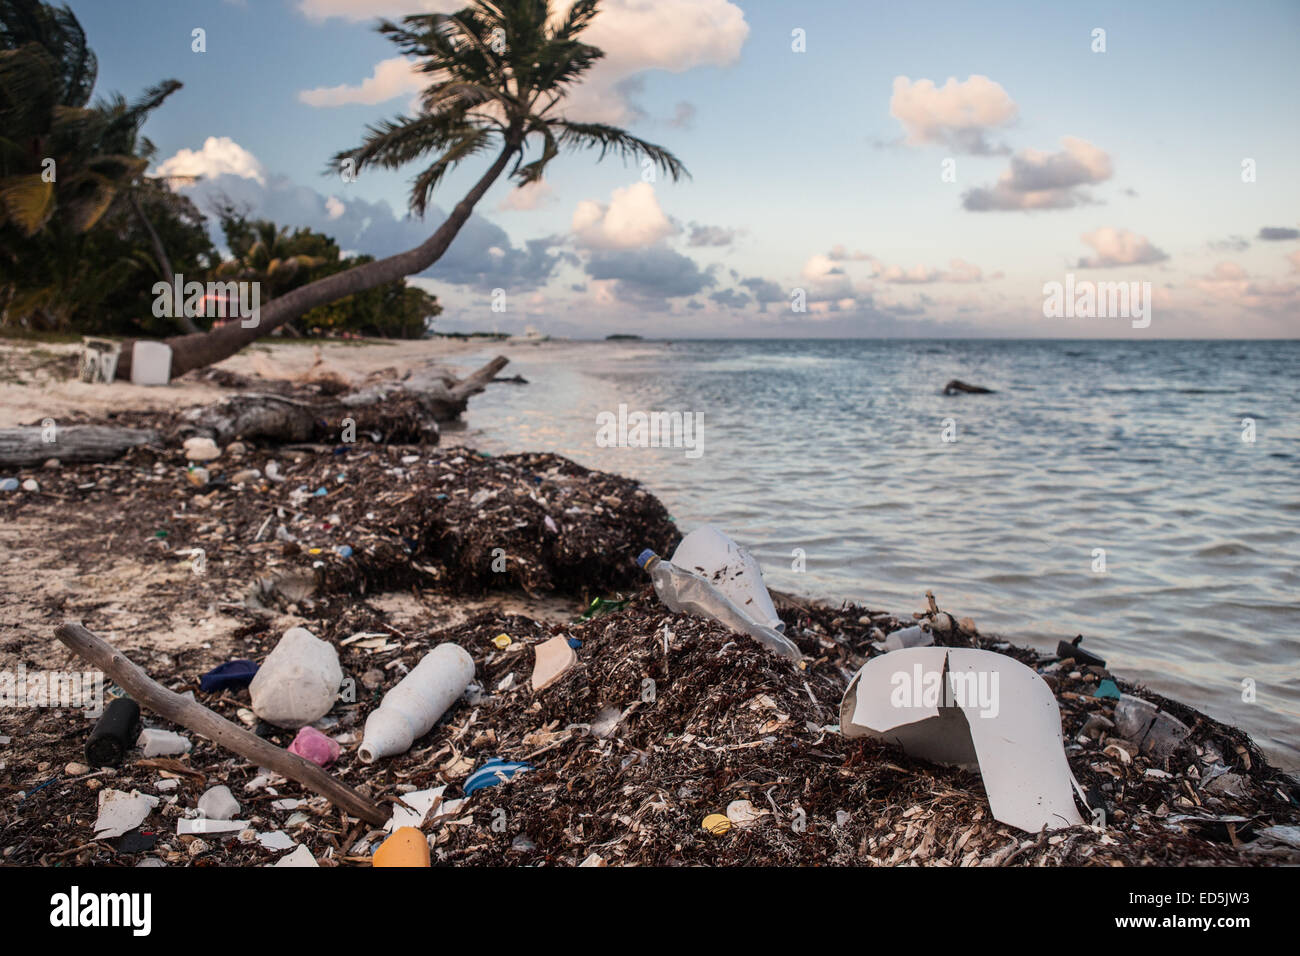 Plastic garbage has washed ashore on a remote island in the Caribbean Sea. Plastic refuse is a major environmental - Stock Image